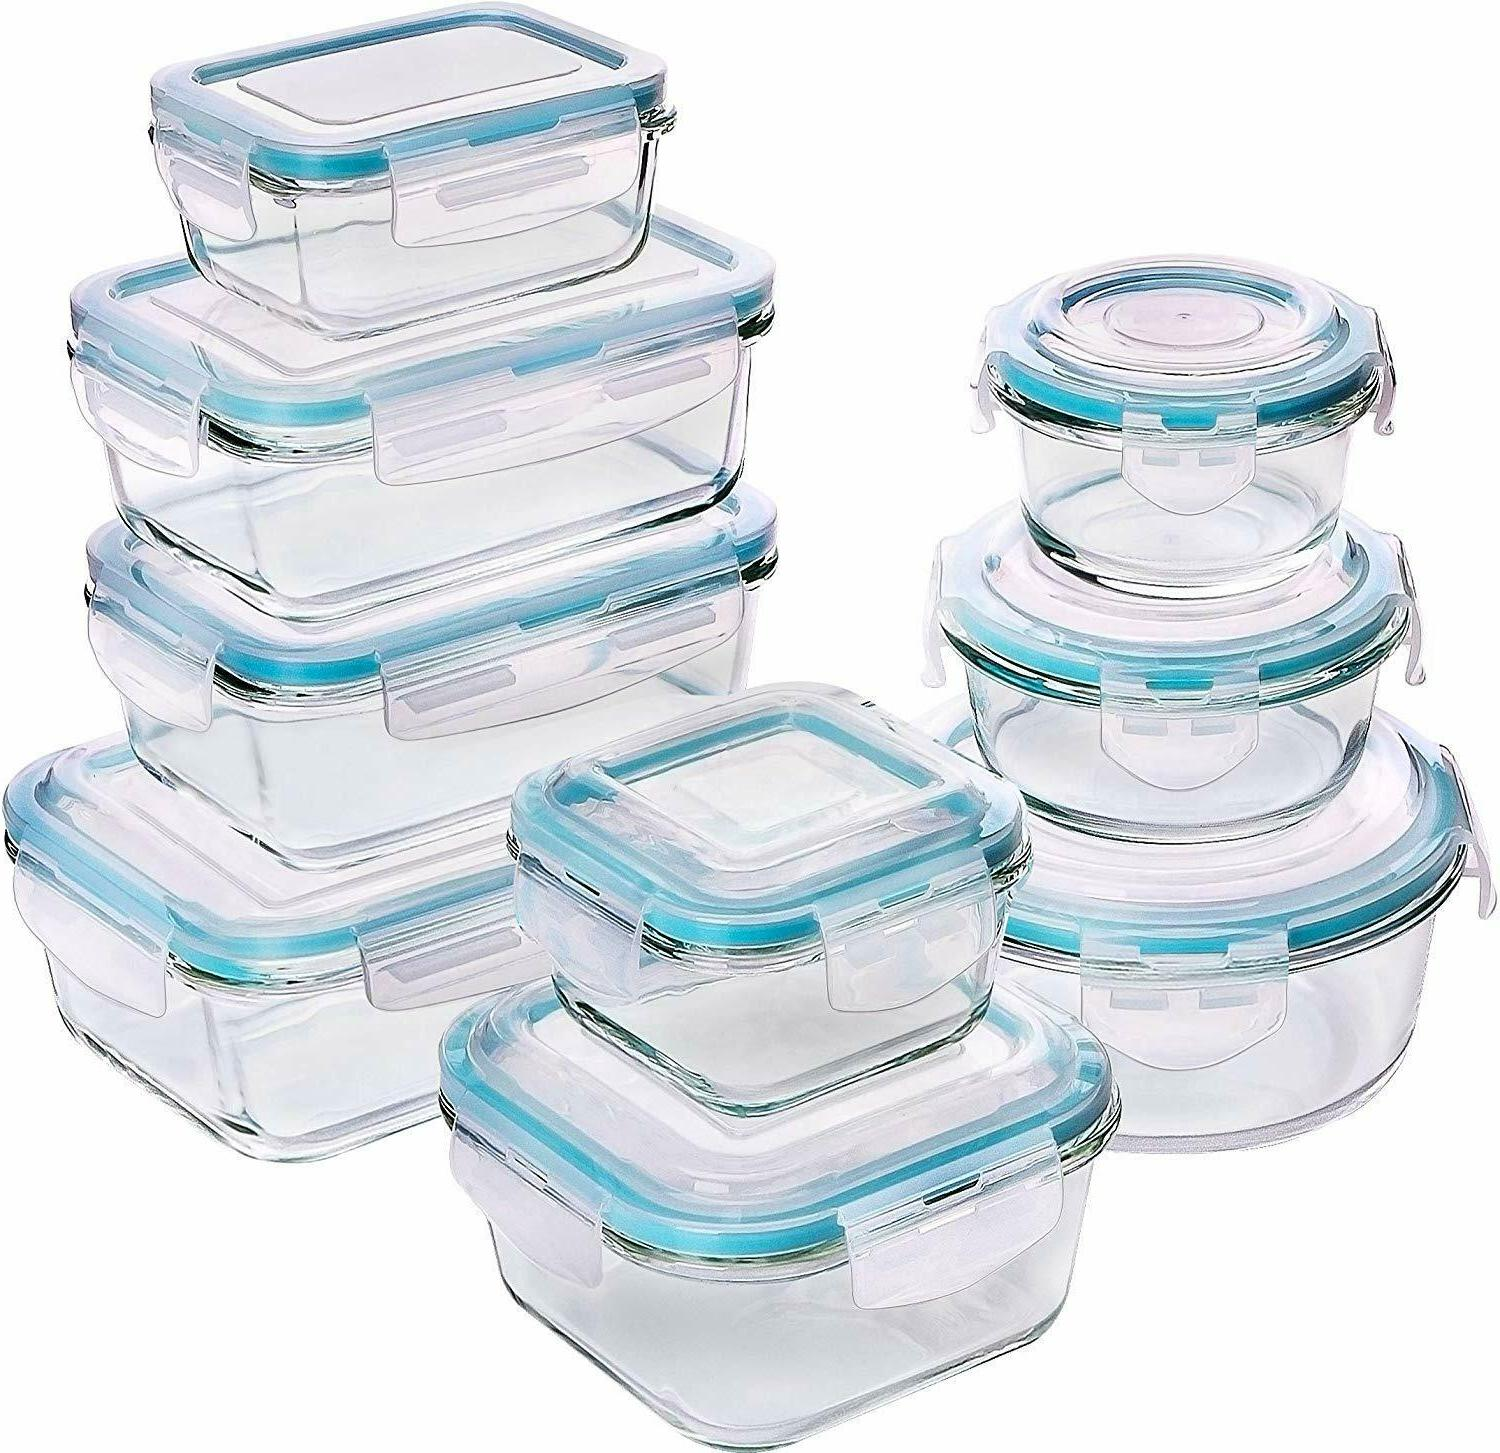 glass food storage container set 18 pieces